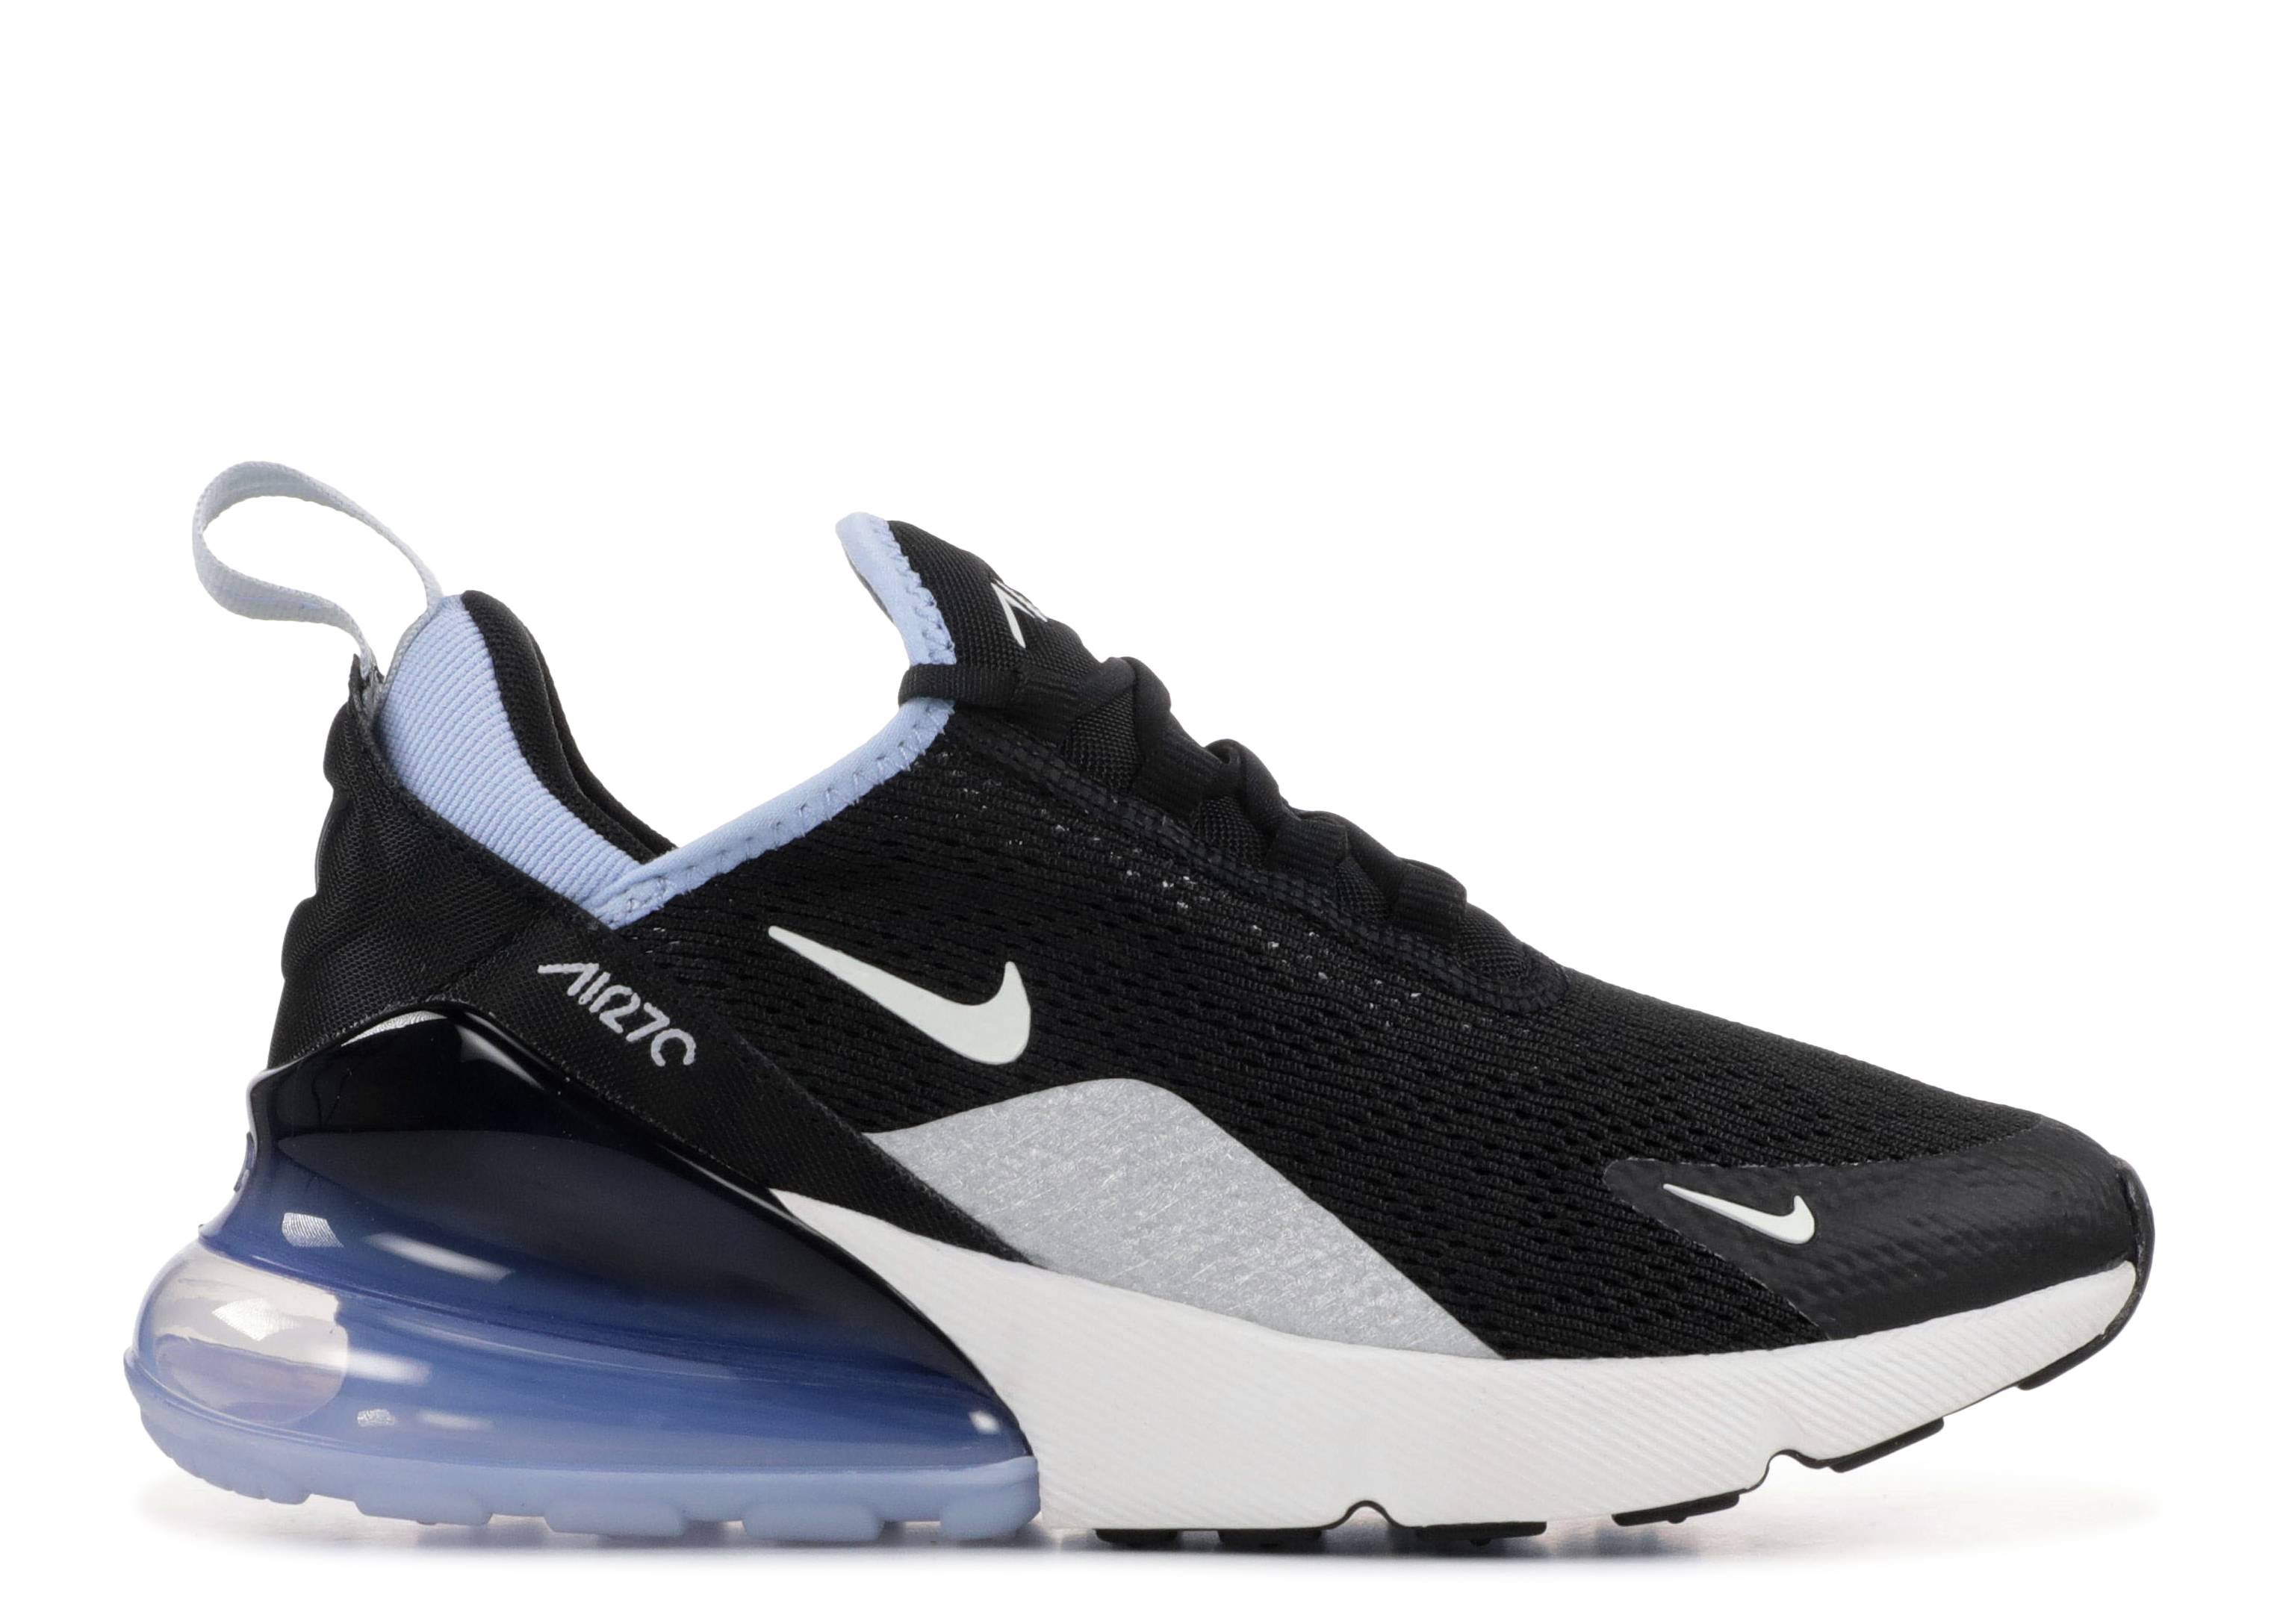 outlet store d32e9 842a6 W Air max 270